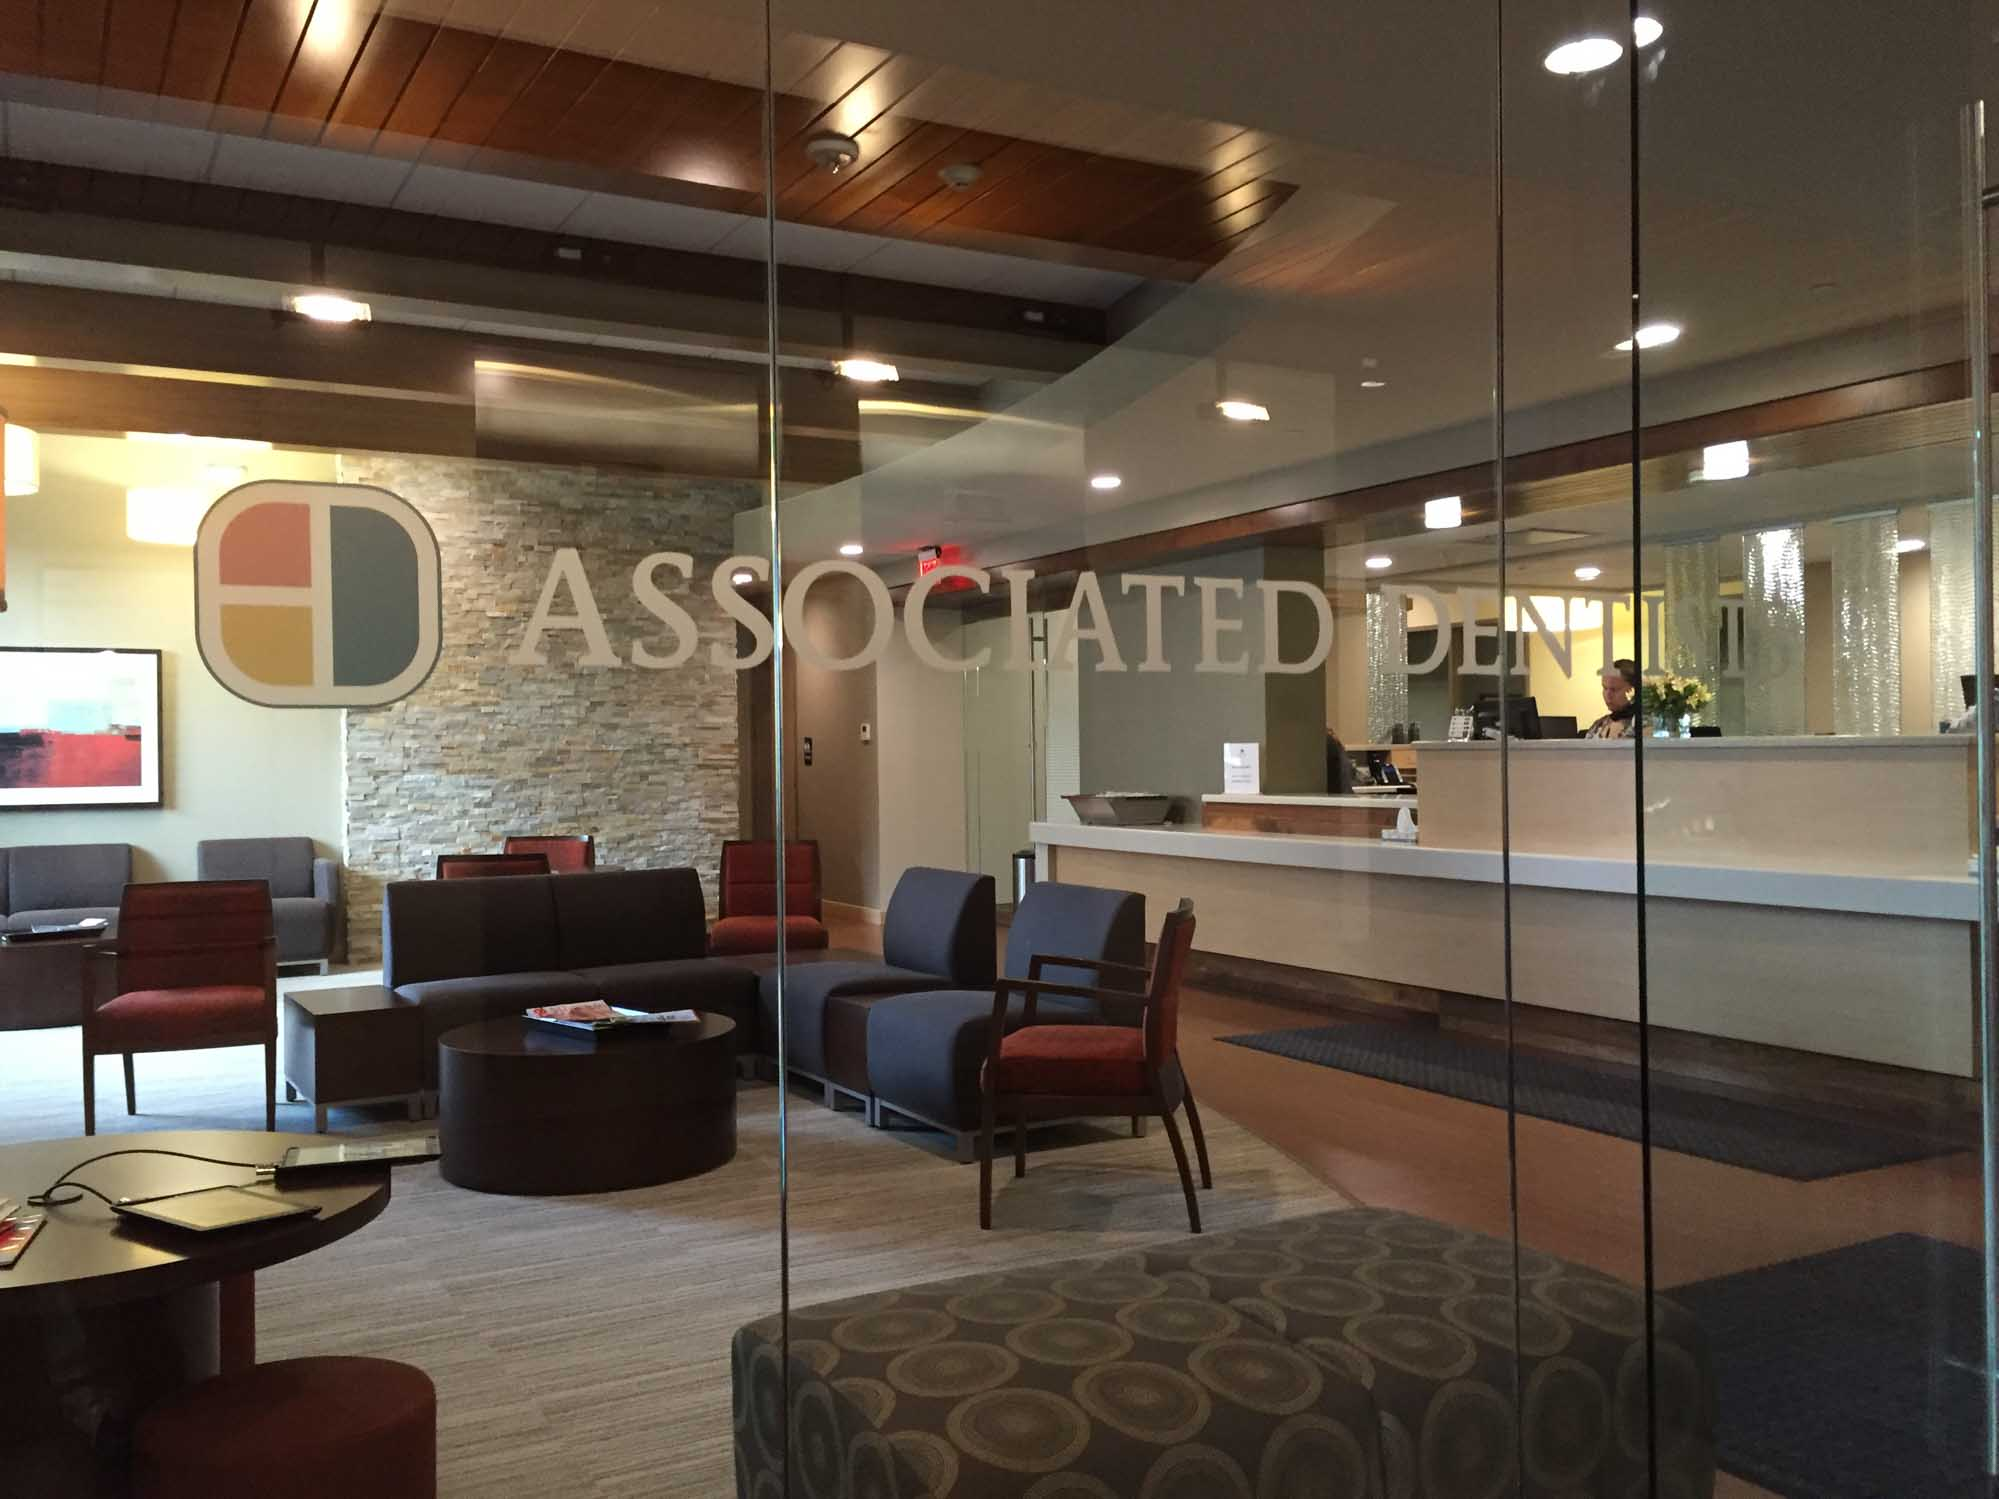 Transparent door before entrance in Associated Dentists Madison Office